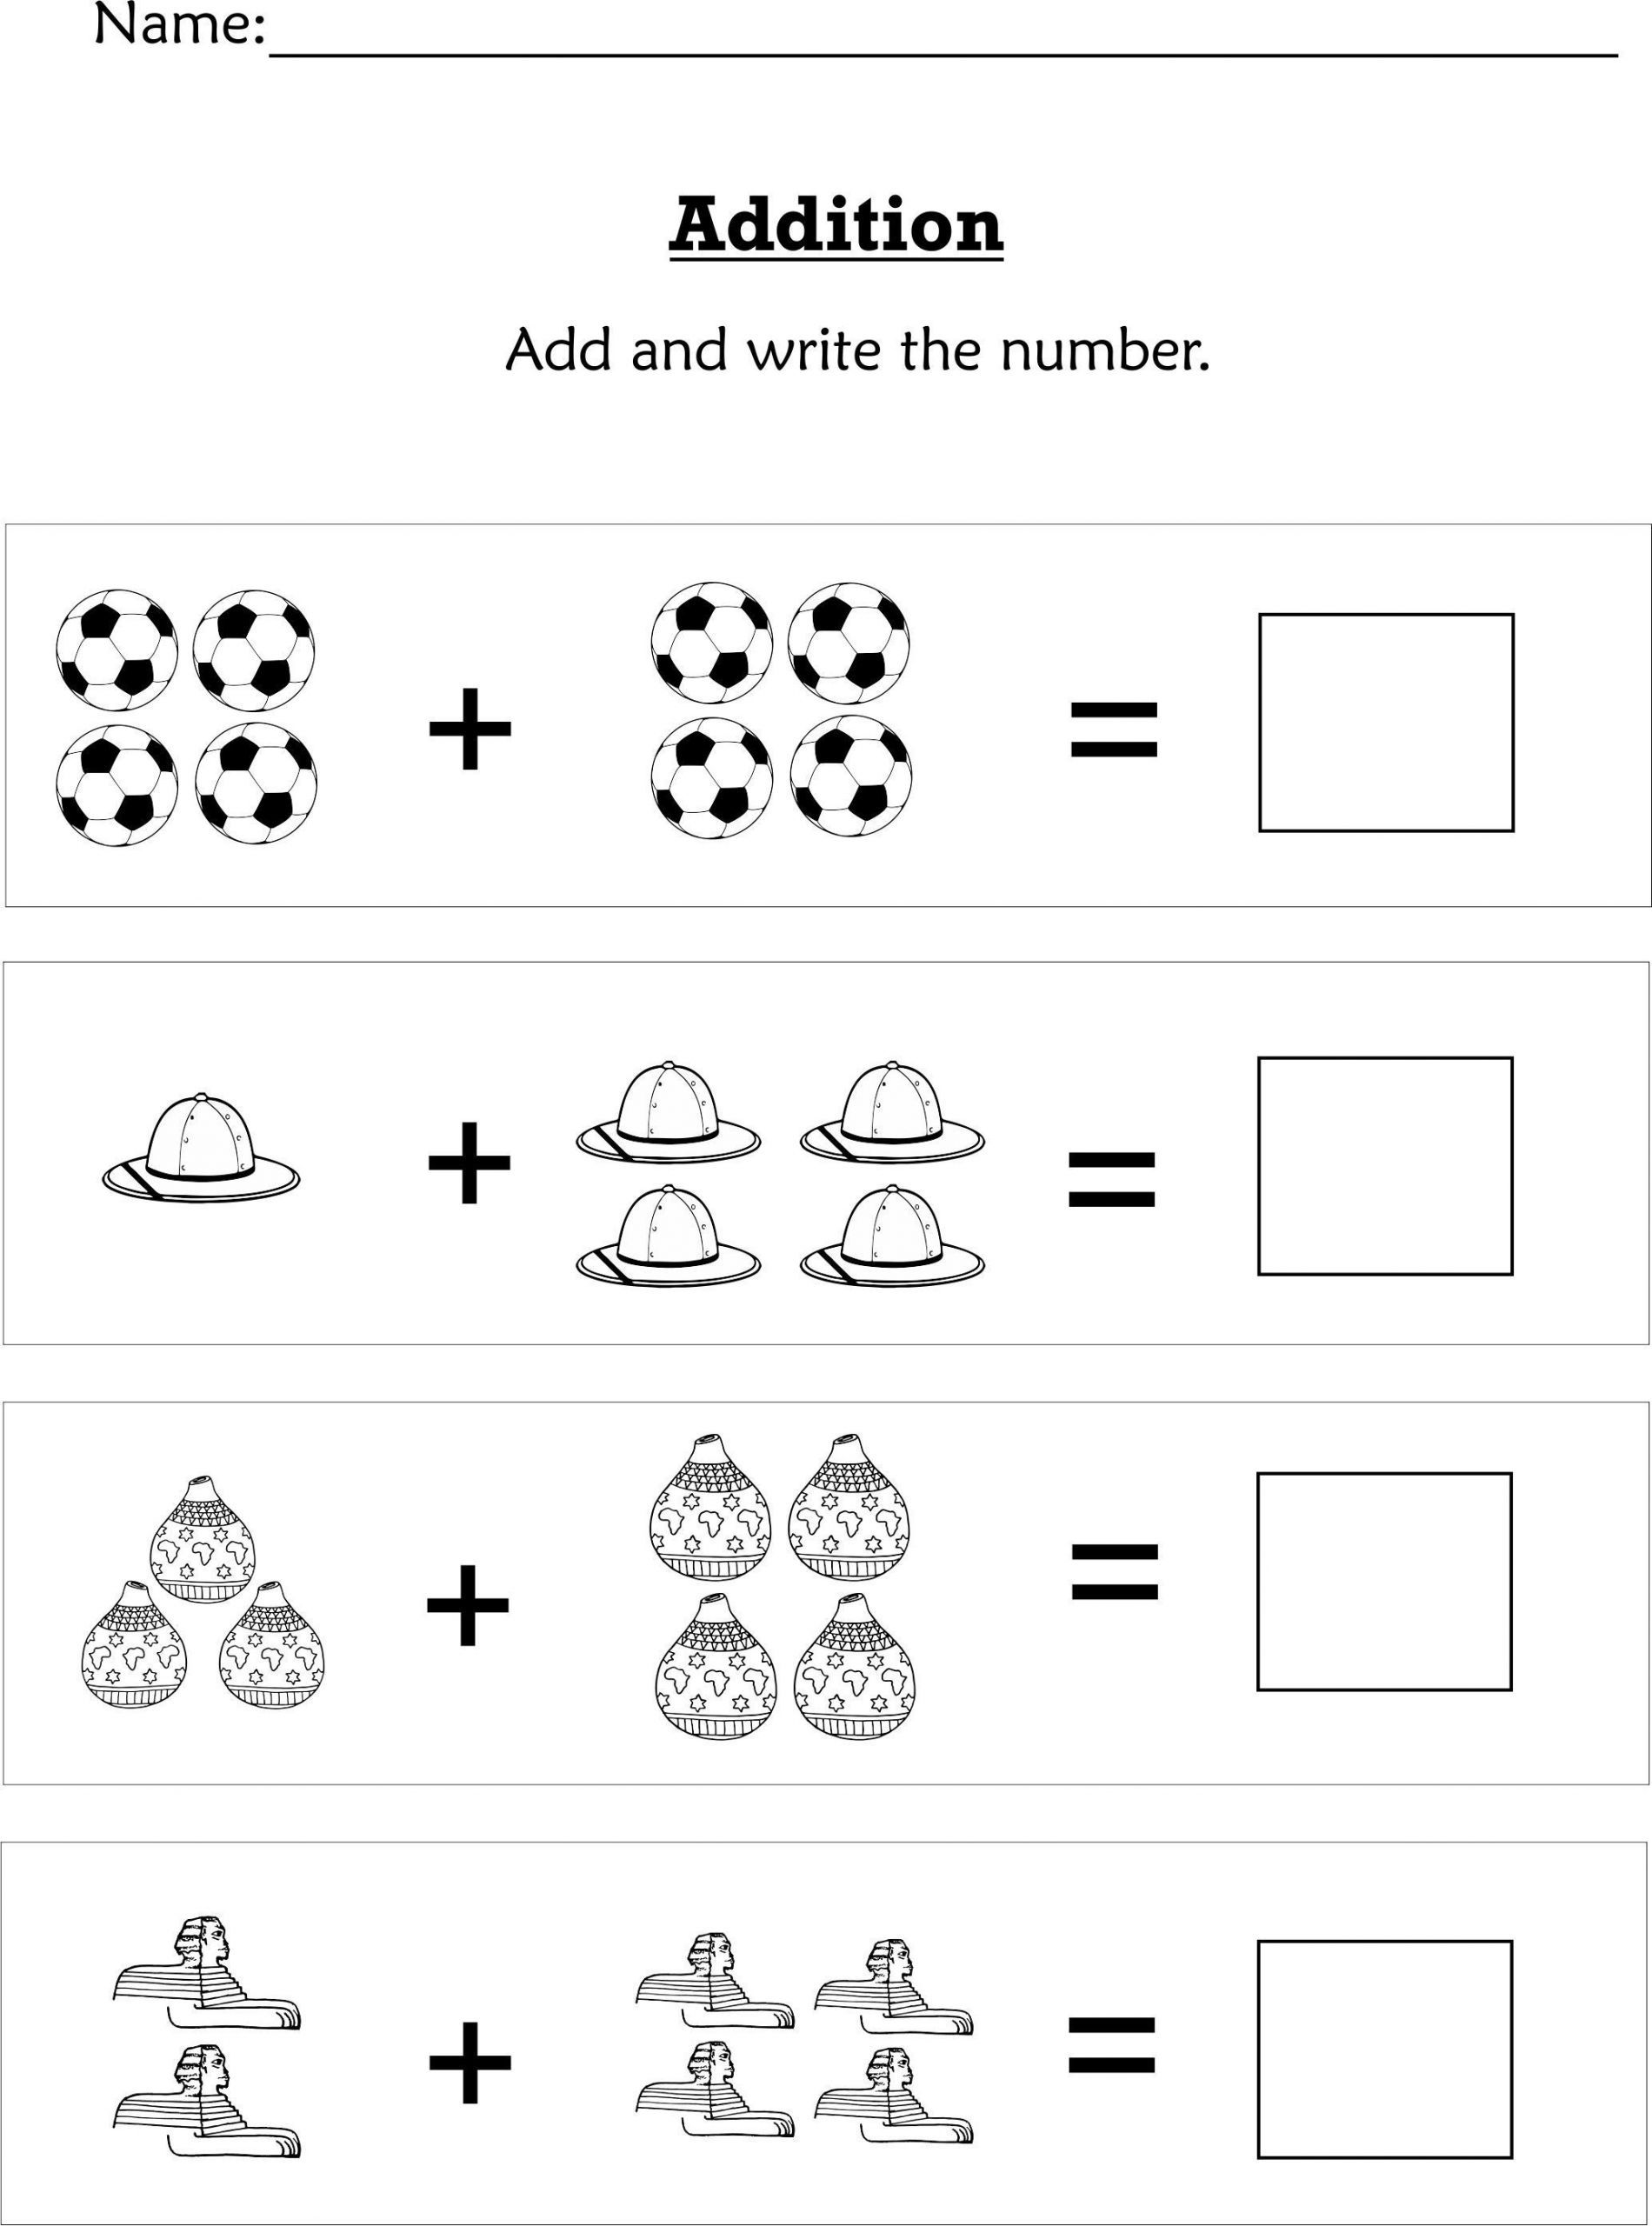 7 Preschool Worksheets In With Images